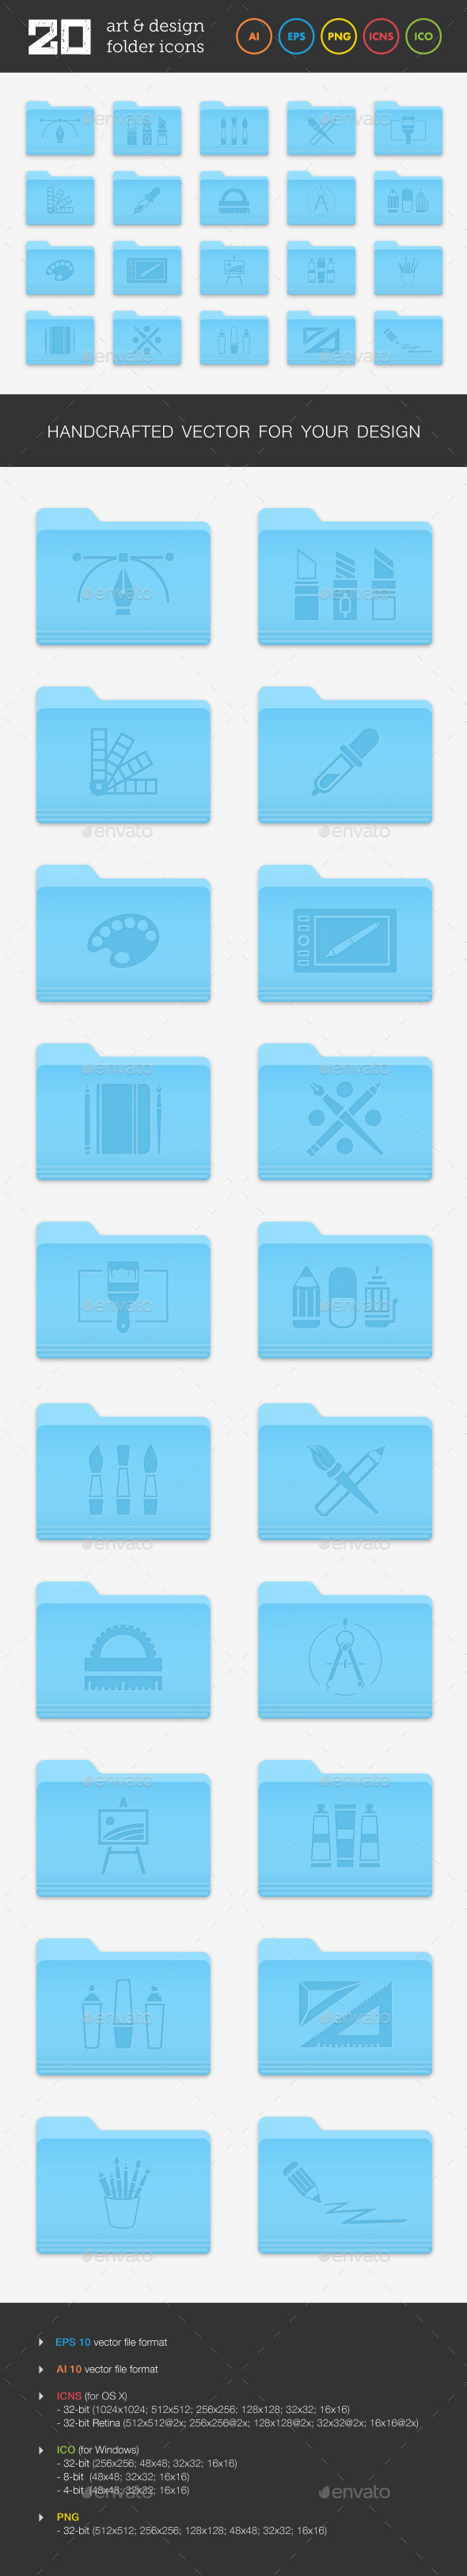 GraphicRiver Art and Design Folder Icons Set 1 9304188